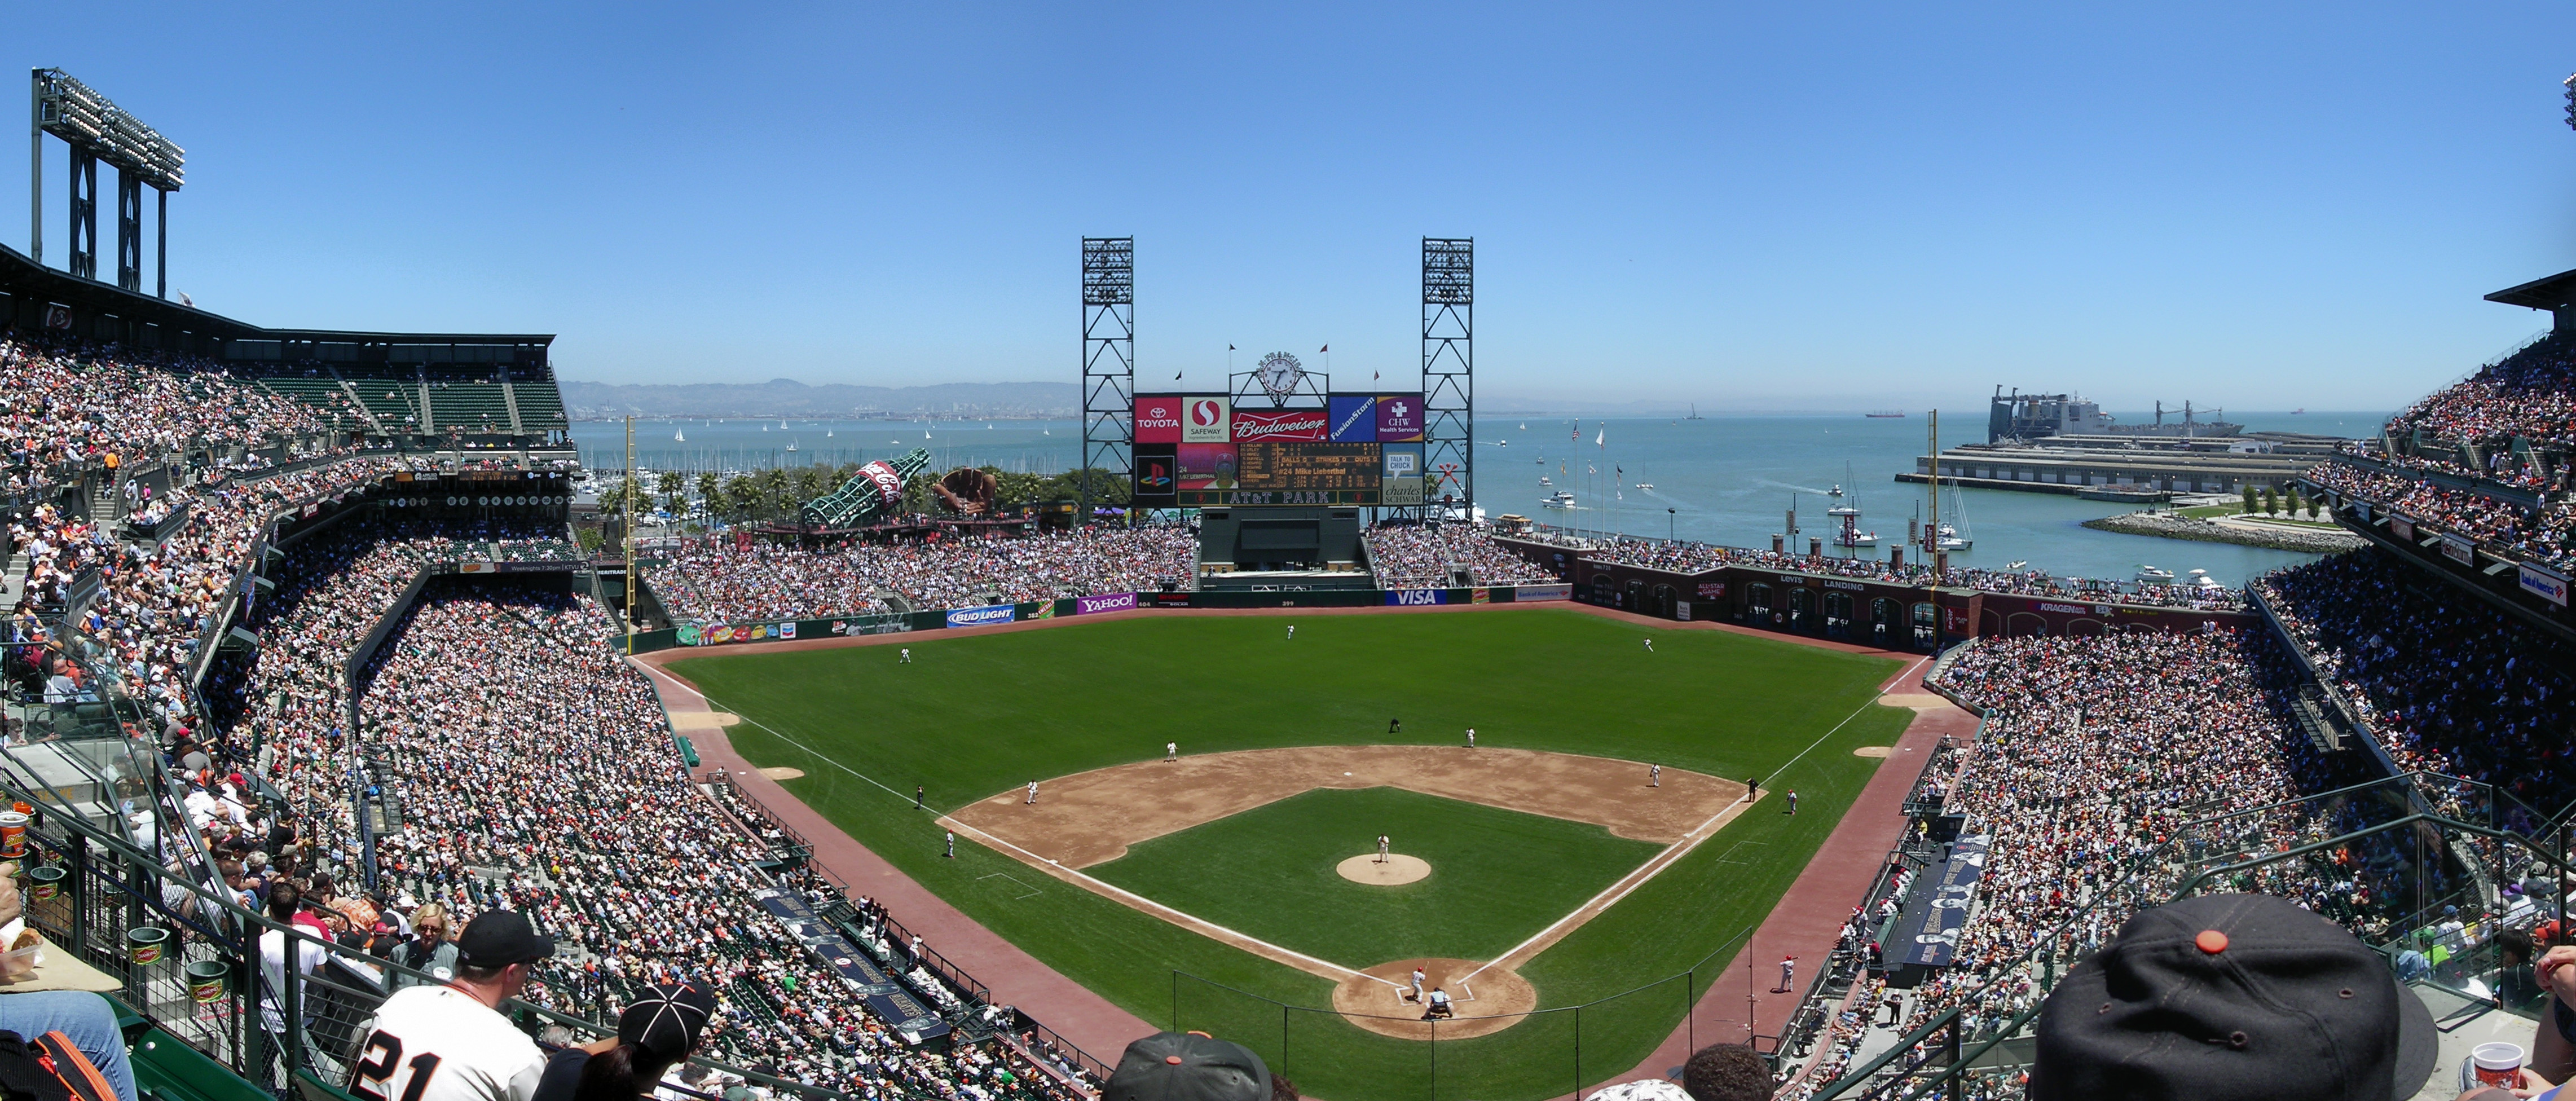 Giants Baseball Stadium Wallpapers HD Desktop and Mobile Backgrounds 4567x1952